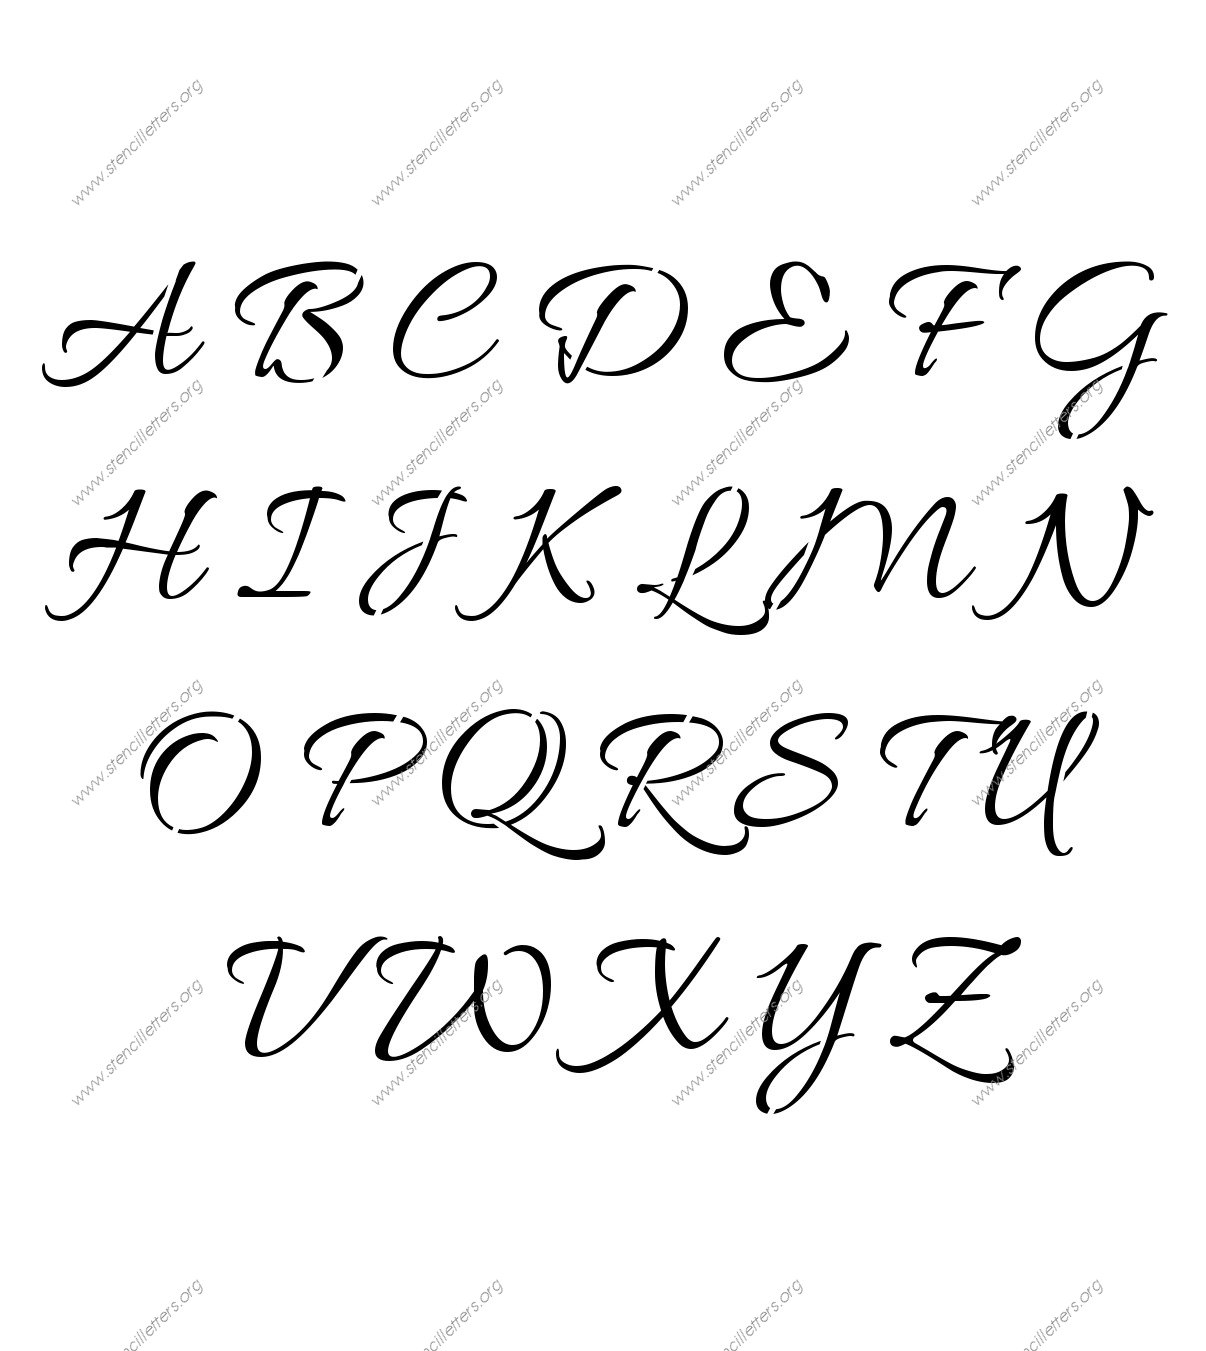 Worksheet Cursive Lettets stylish cursive letter stencils numbers and custom made to order connected stencil set